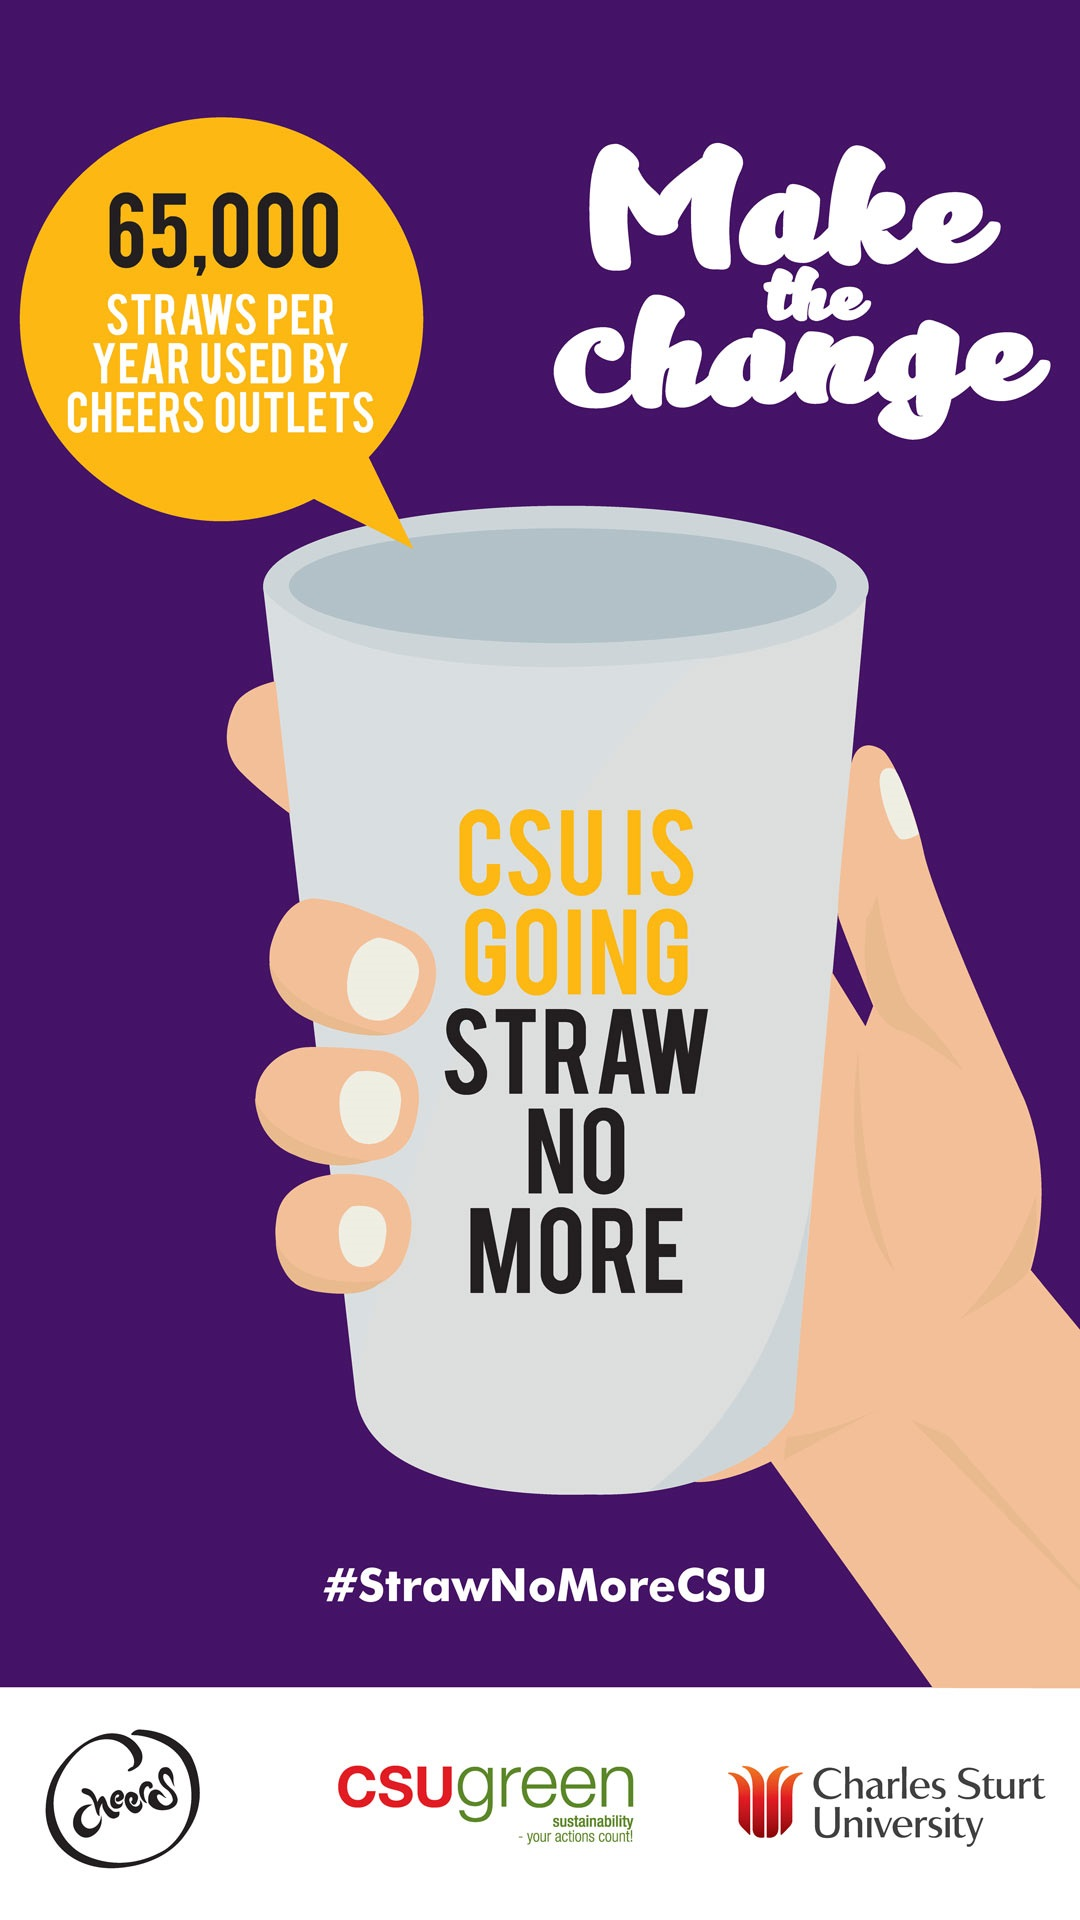 65,000 plastic straws every year were used by CSU before we launched the Straw No More campaign